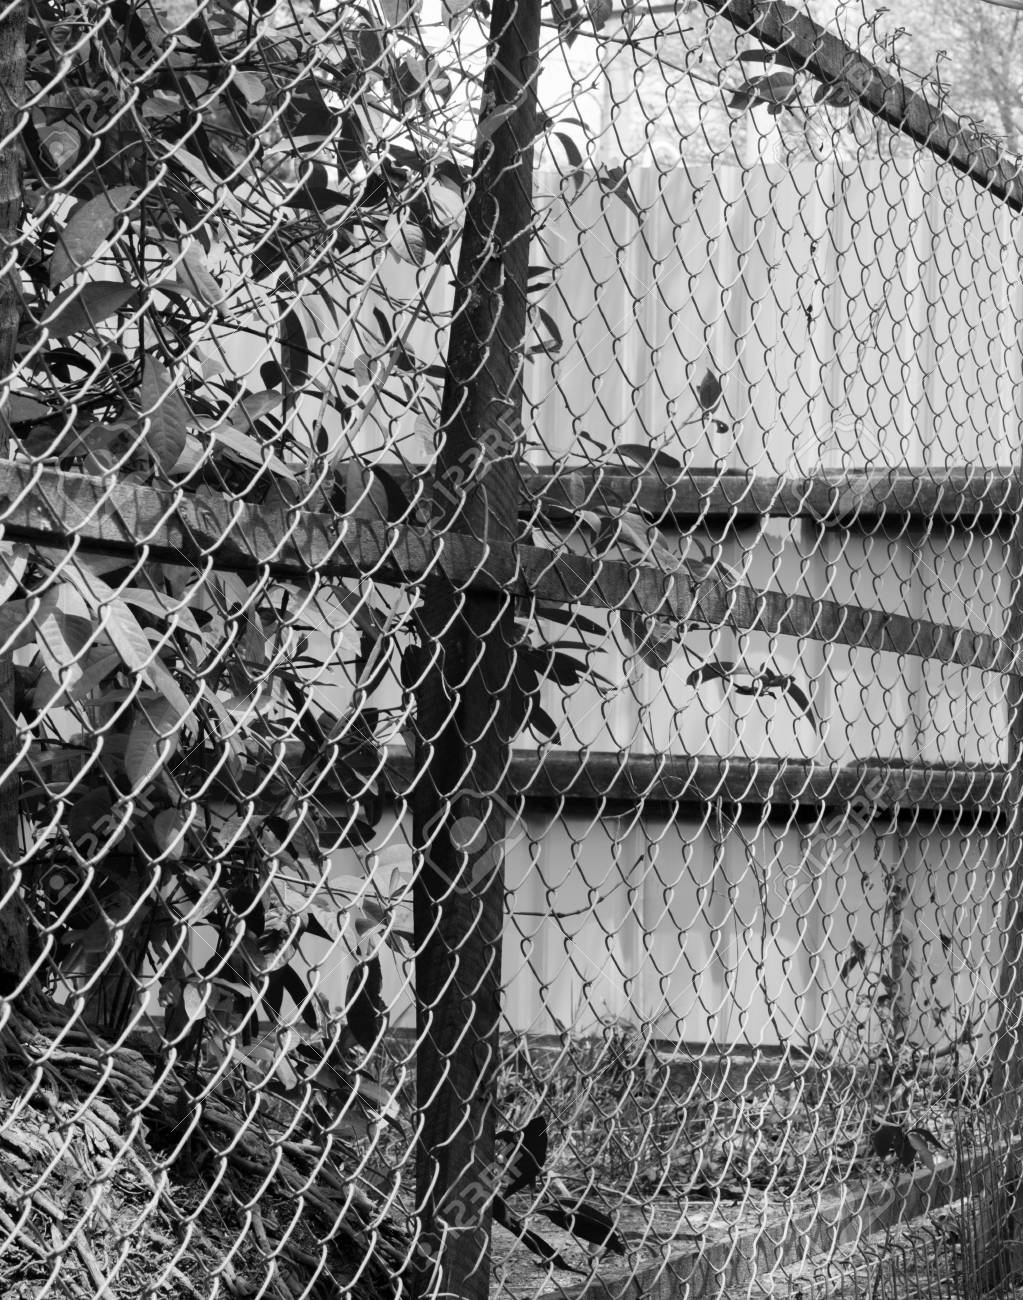 black and white photo of chain link fence also referred to as